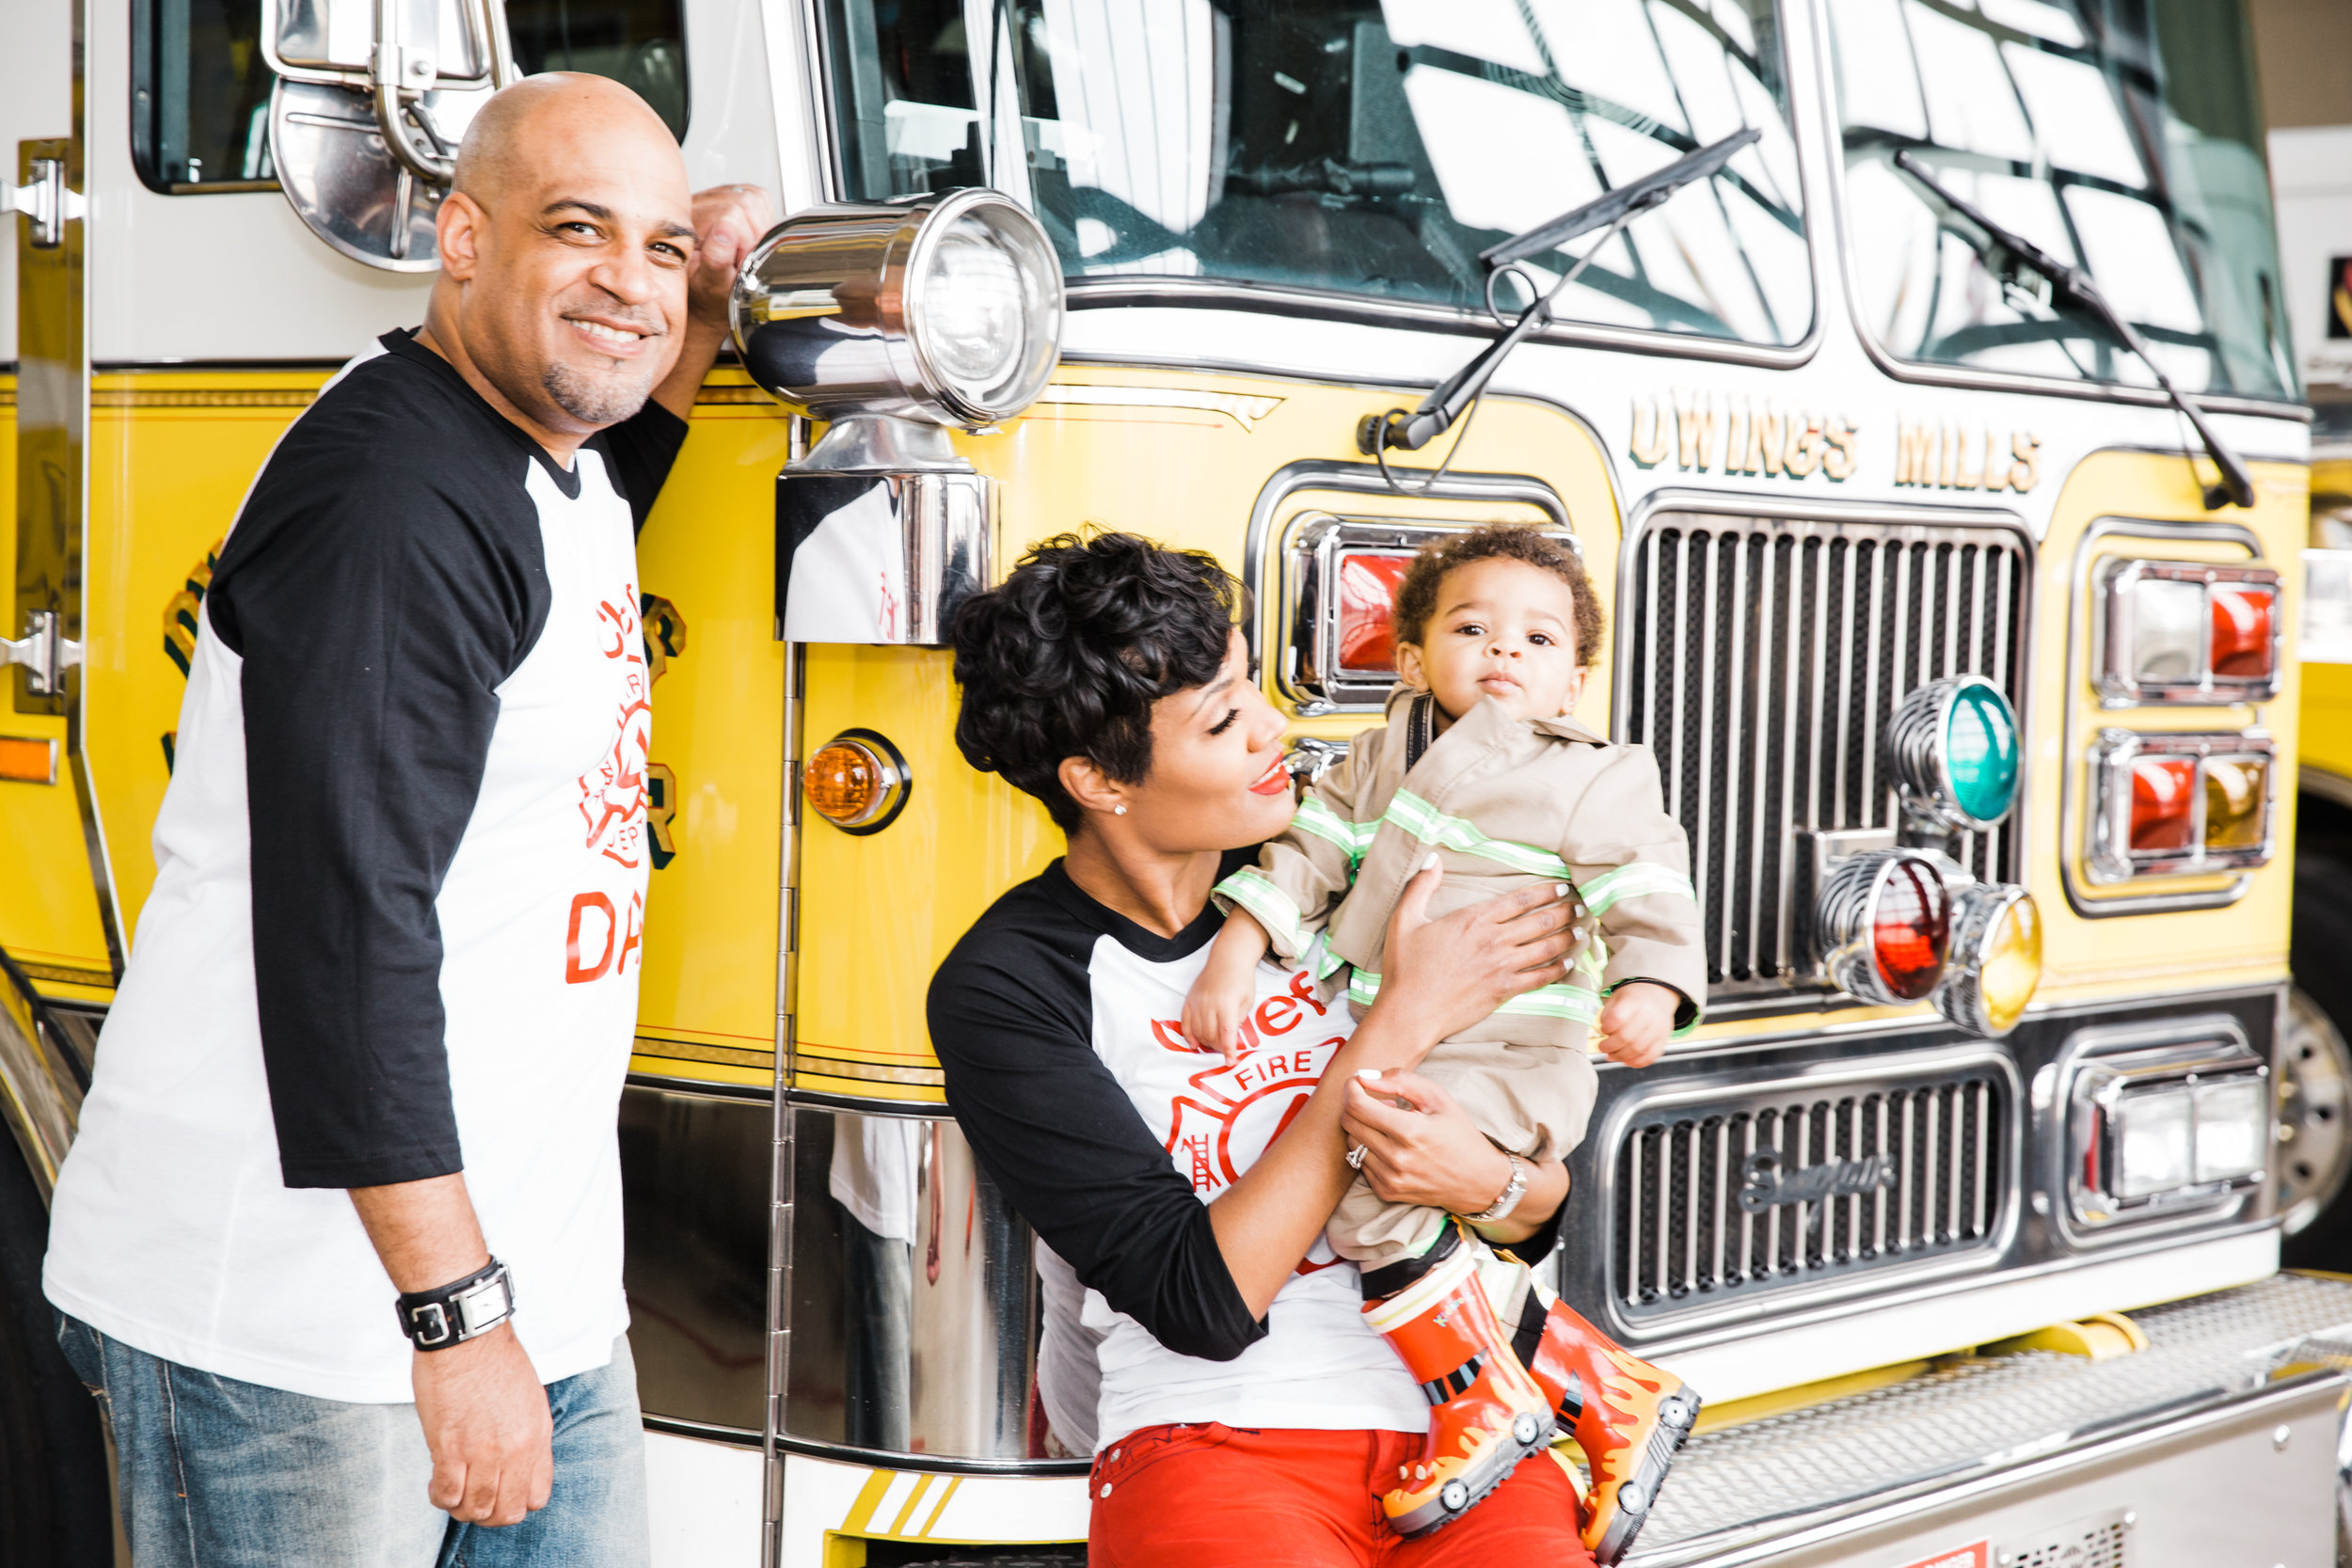 Fireman Birthday Party Ideas  Decorations Owings Mills Fire Department Maryland Family Photographers Megapixels Media Photography (7 of 55).jpg